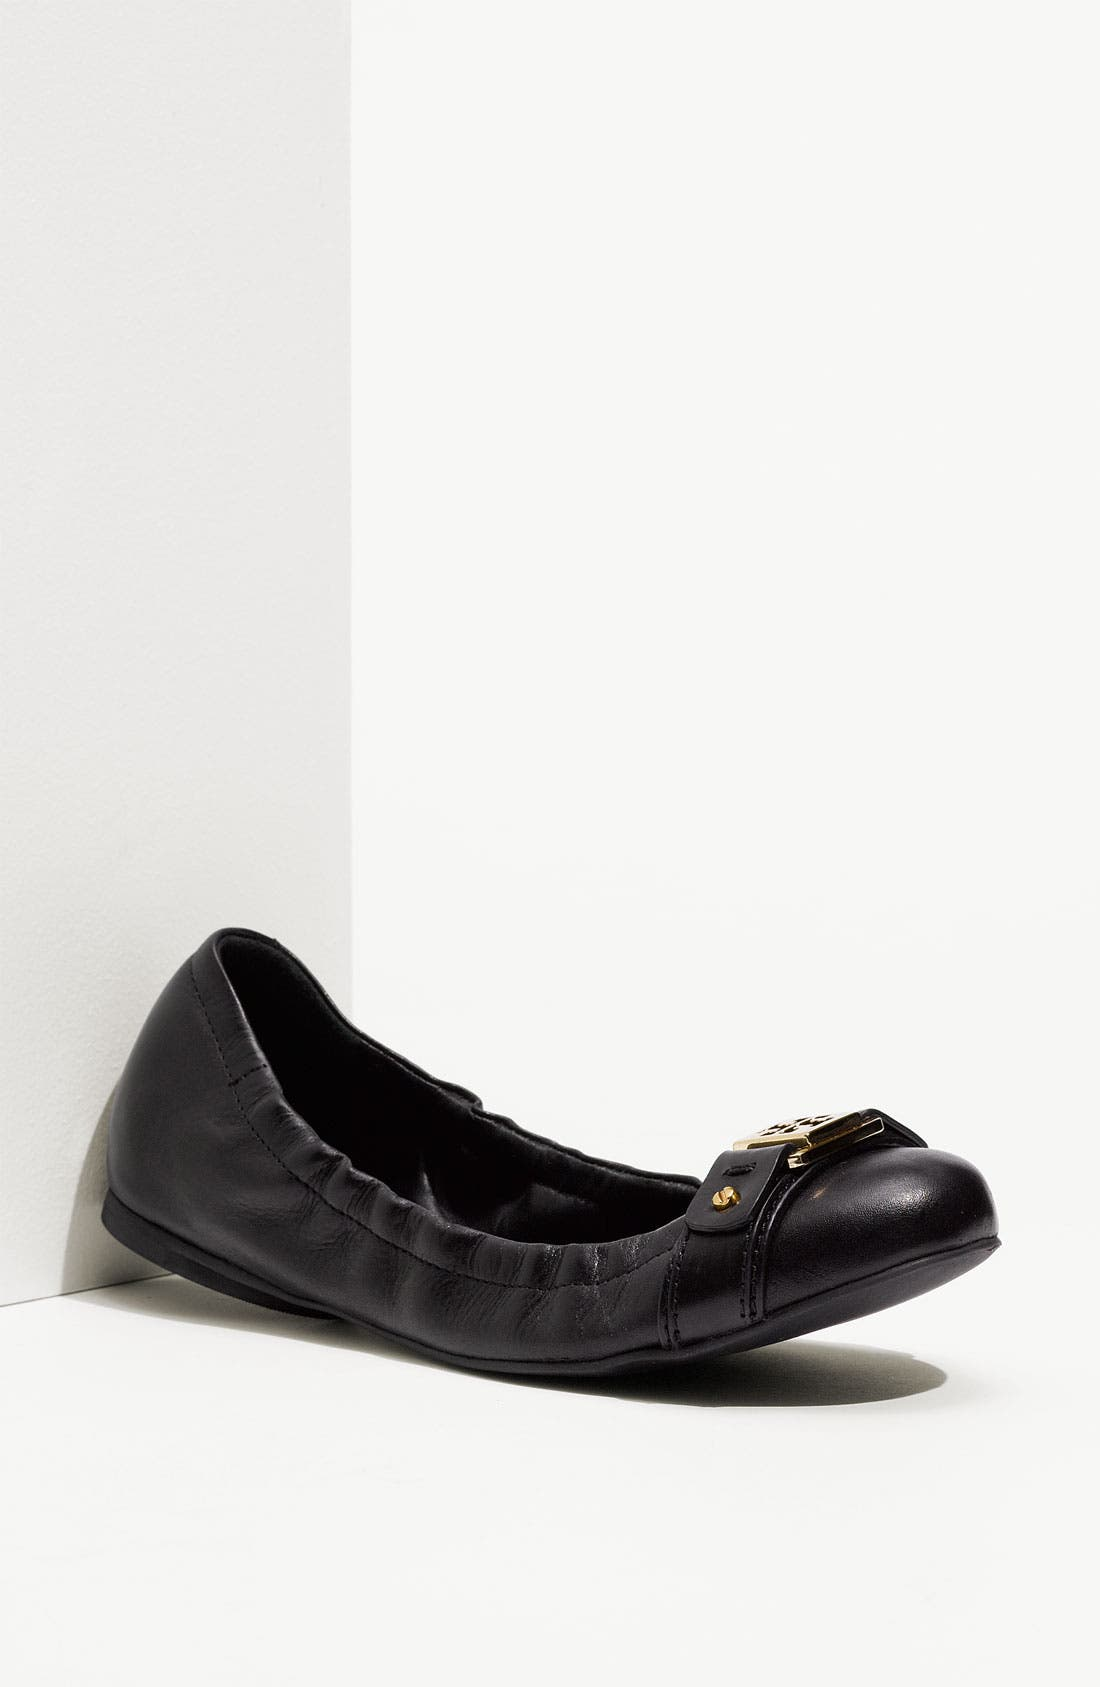 Alternate Image 1 Selected - Tory Burch Leather Flat (Nordstrom Exclusive)